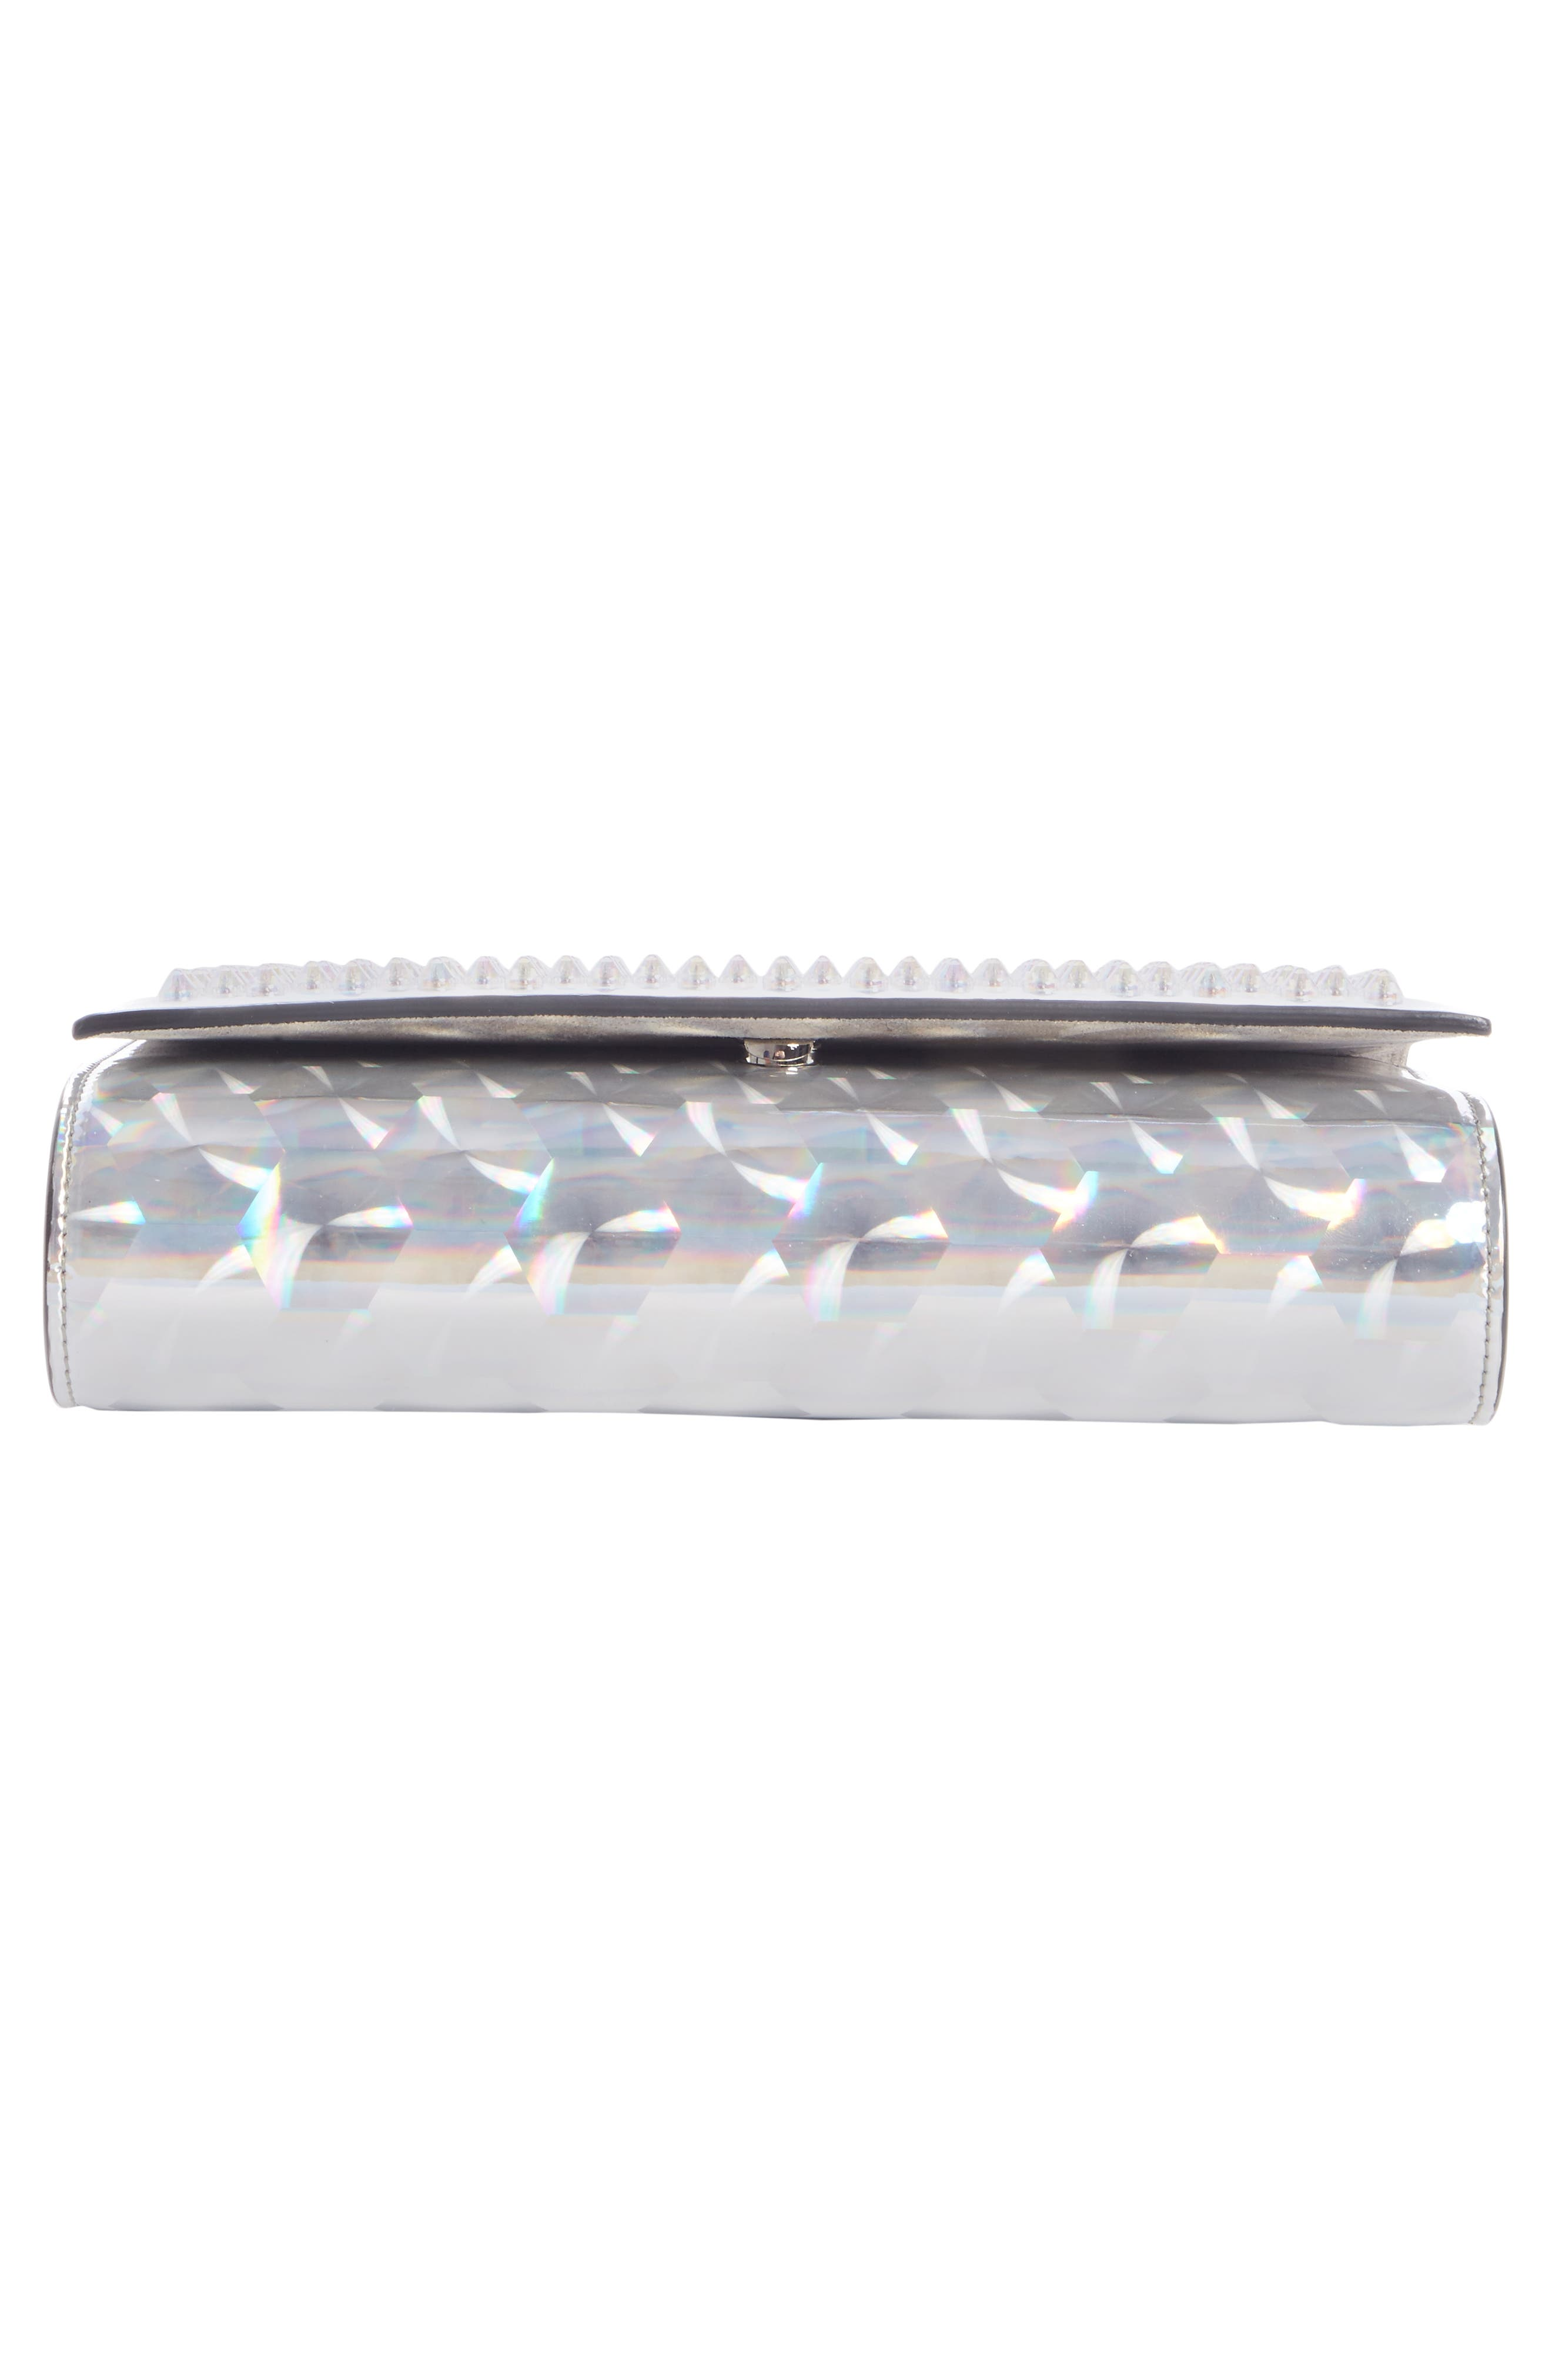 Paloma Studded Clutch,                             Alternate thumbnail 5, color,                             SILVER/ CLEAR AB